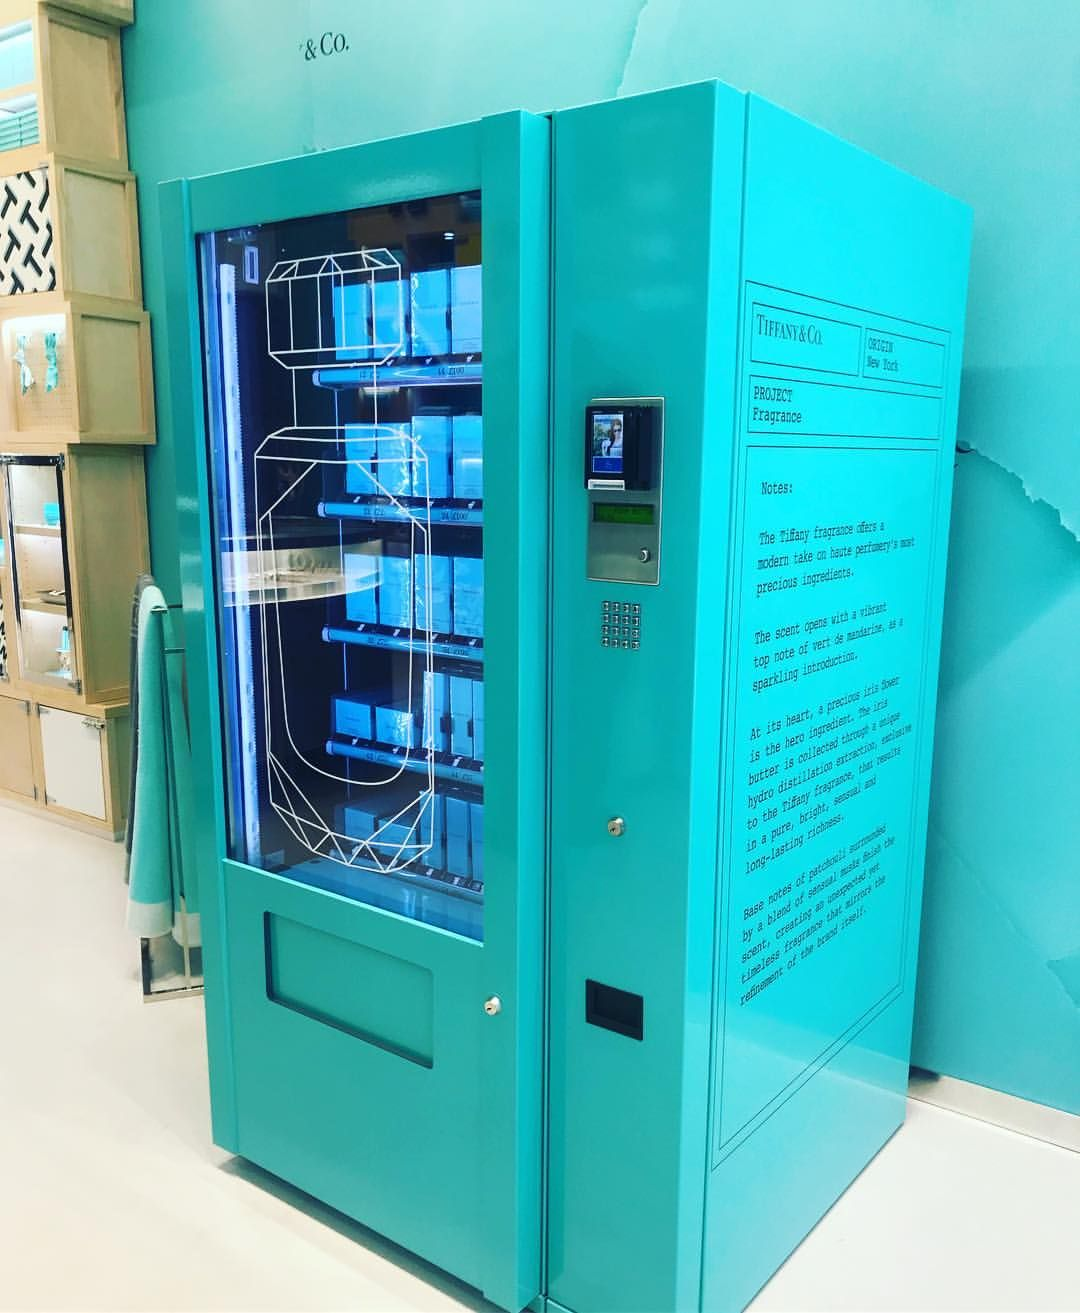 """ed58dc5d8 TIFFANY&CO., Covent Garden, London, UK, """"First ever fragrance vending  machine"""", photo by Sarah Bailey, pinned by Ton van der Veer"""